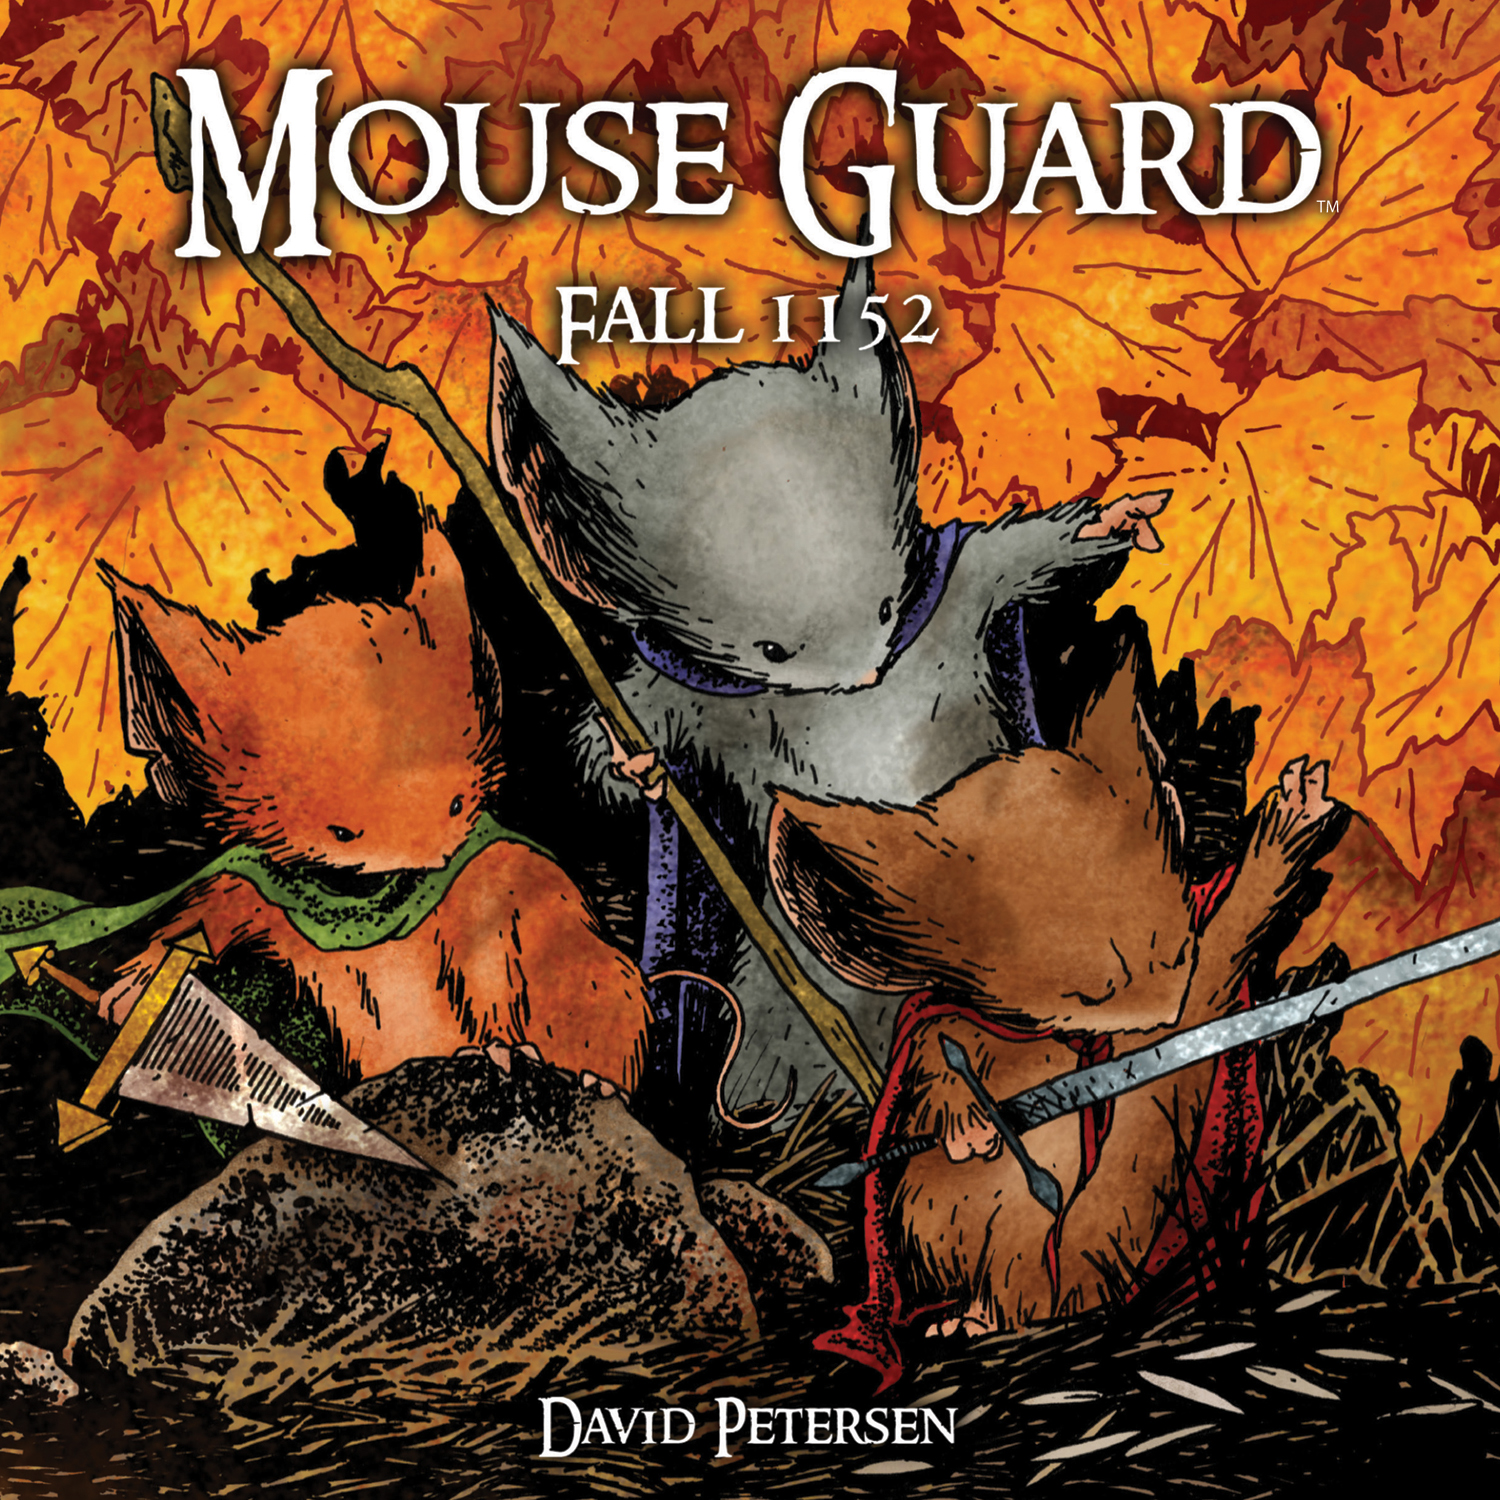 Mouse-Guard-v1-Fall-1152-GN-Cover